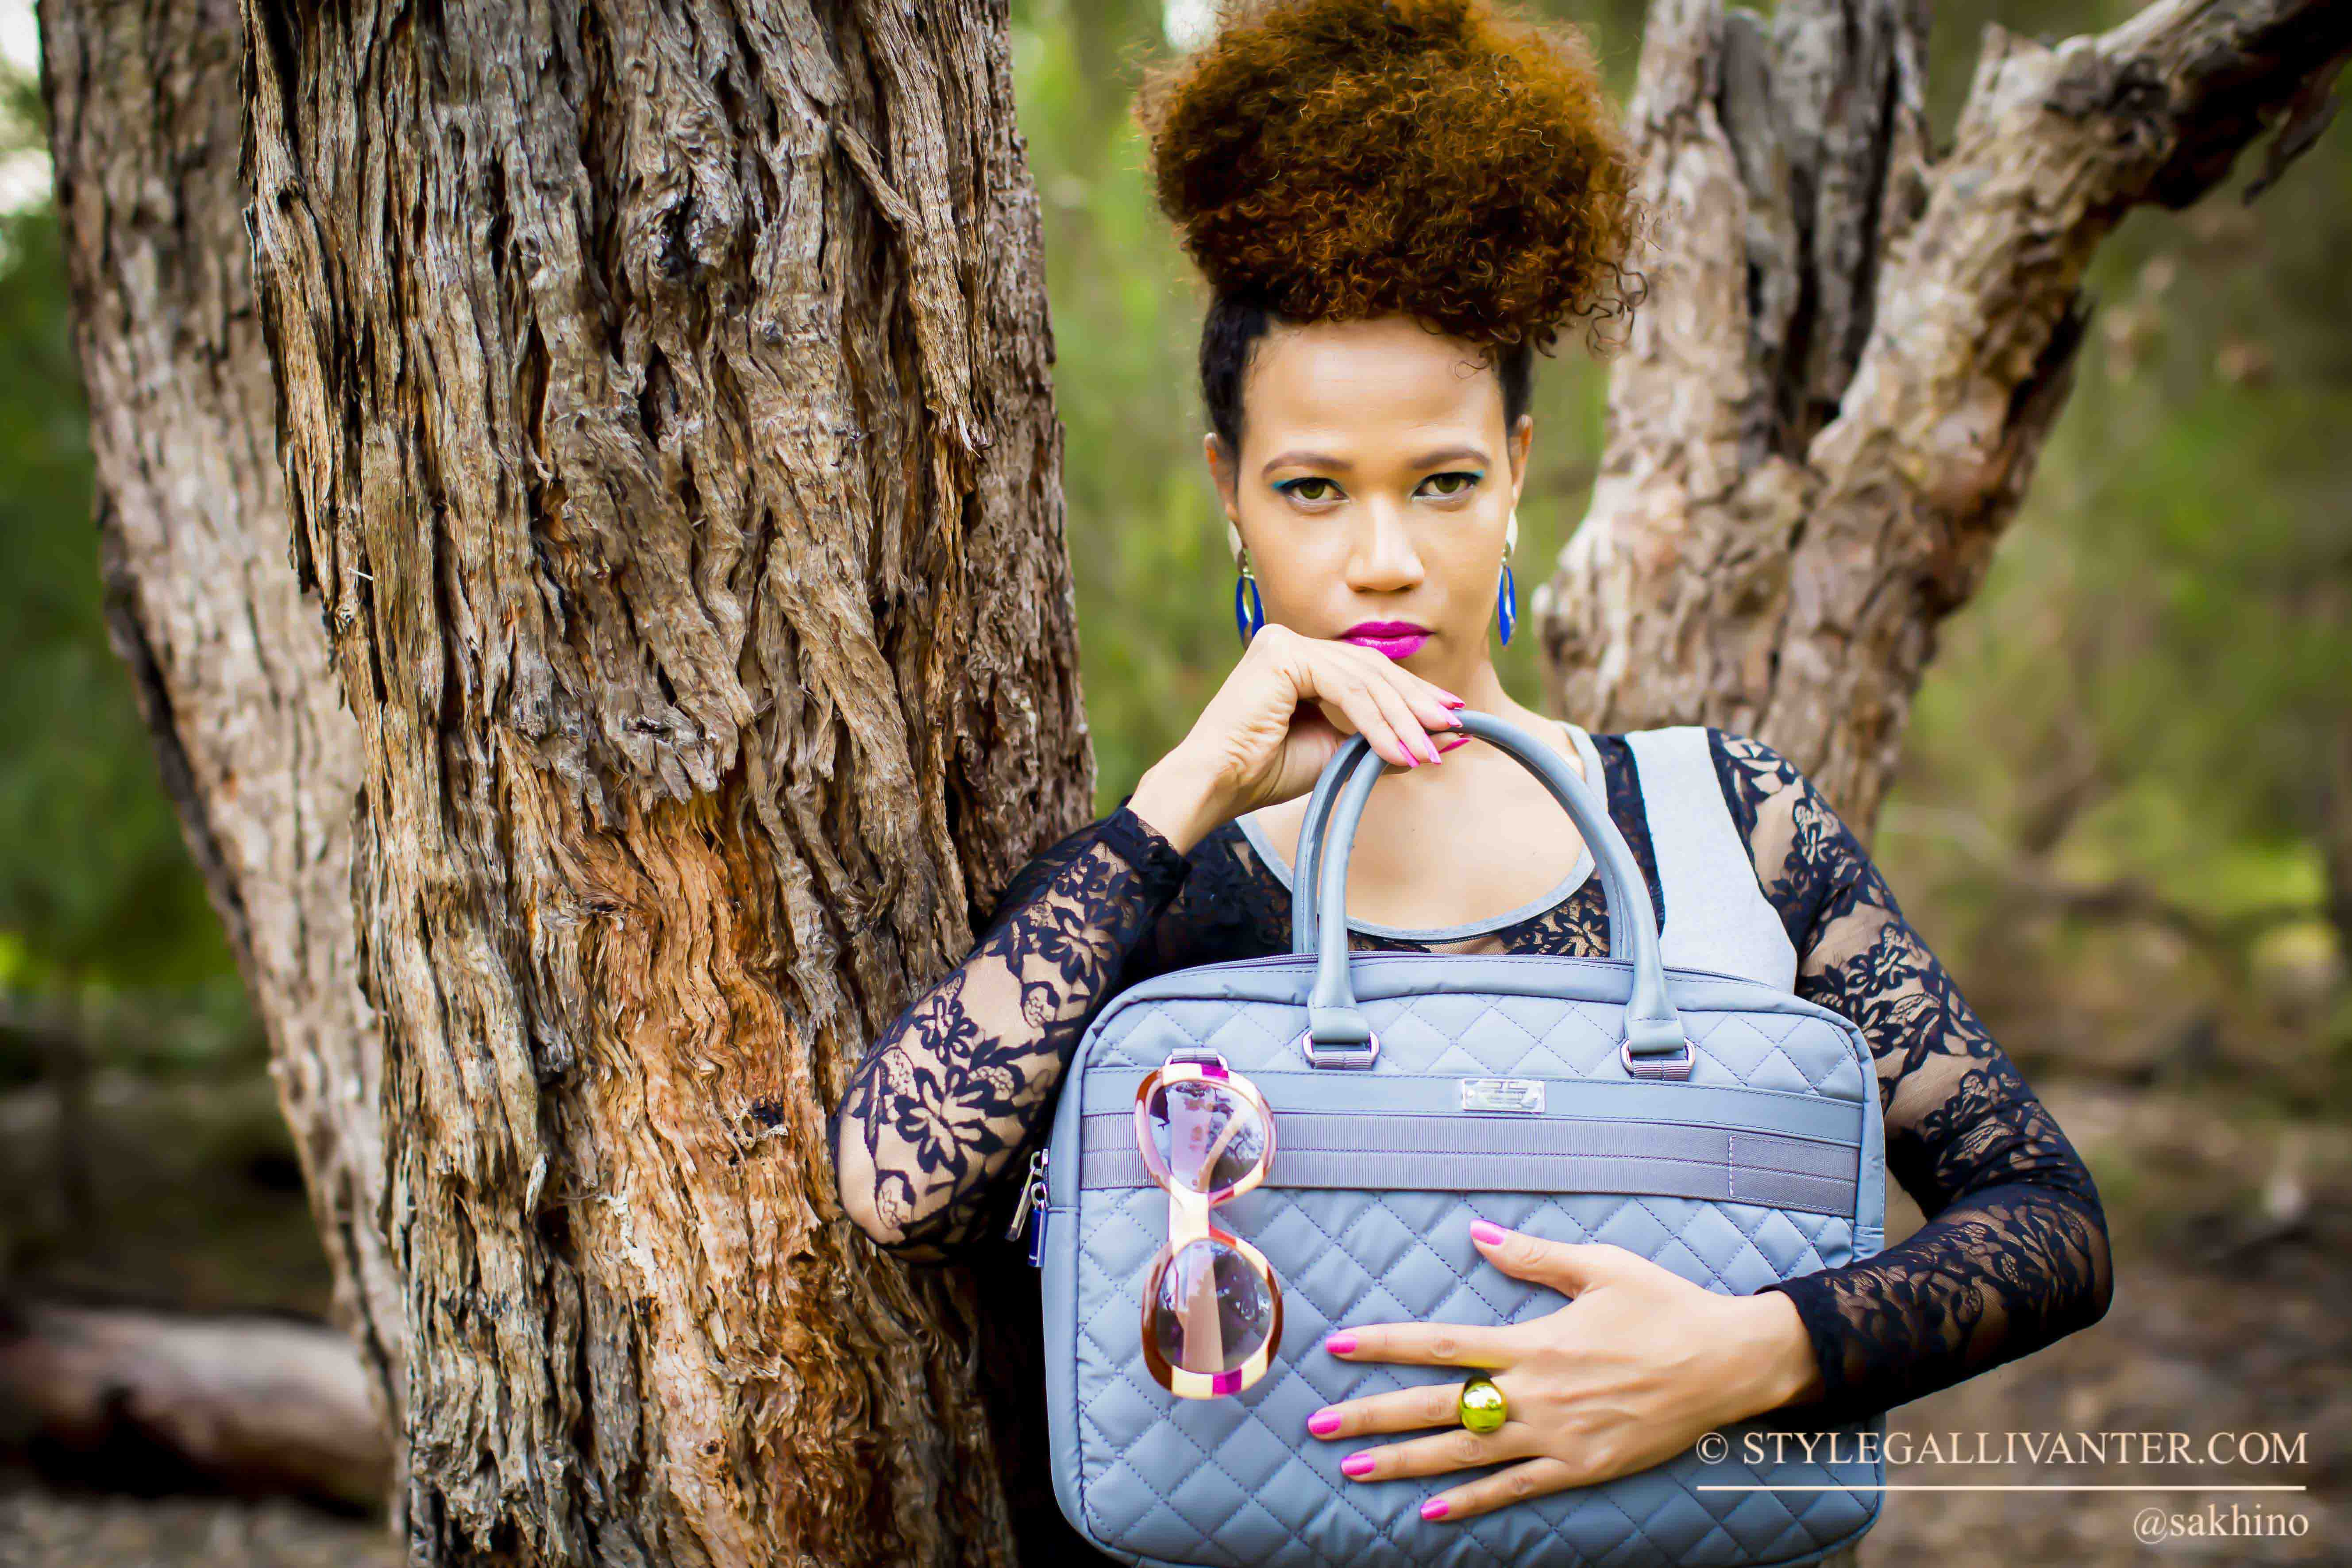 mirandaSAKHINO-copyright-2015_not-to-be-used-without-permission_manolo-blahnik_hedgren-bags-2015_grey-hedgren_top-fashion-blogs-melbourne-2015_blogger-turned-designer-12